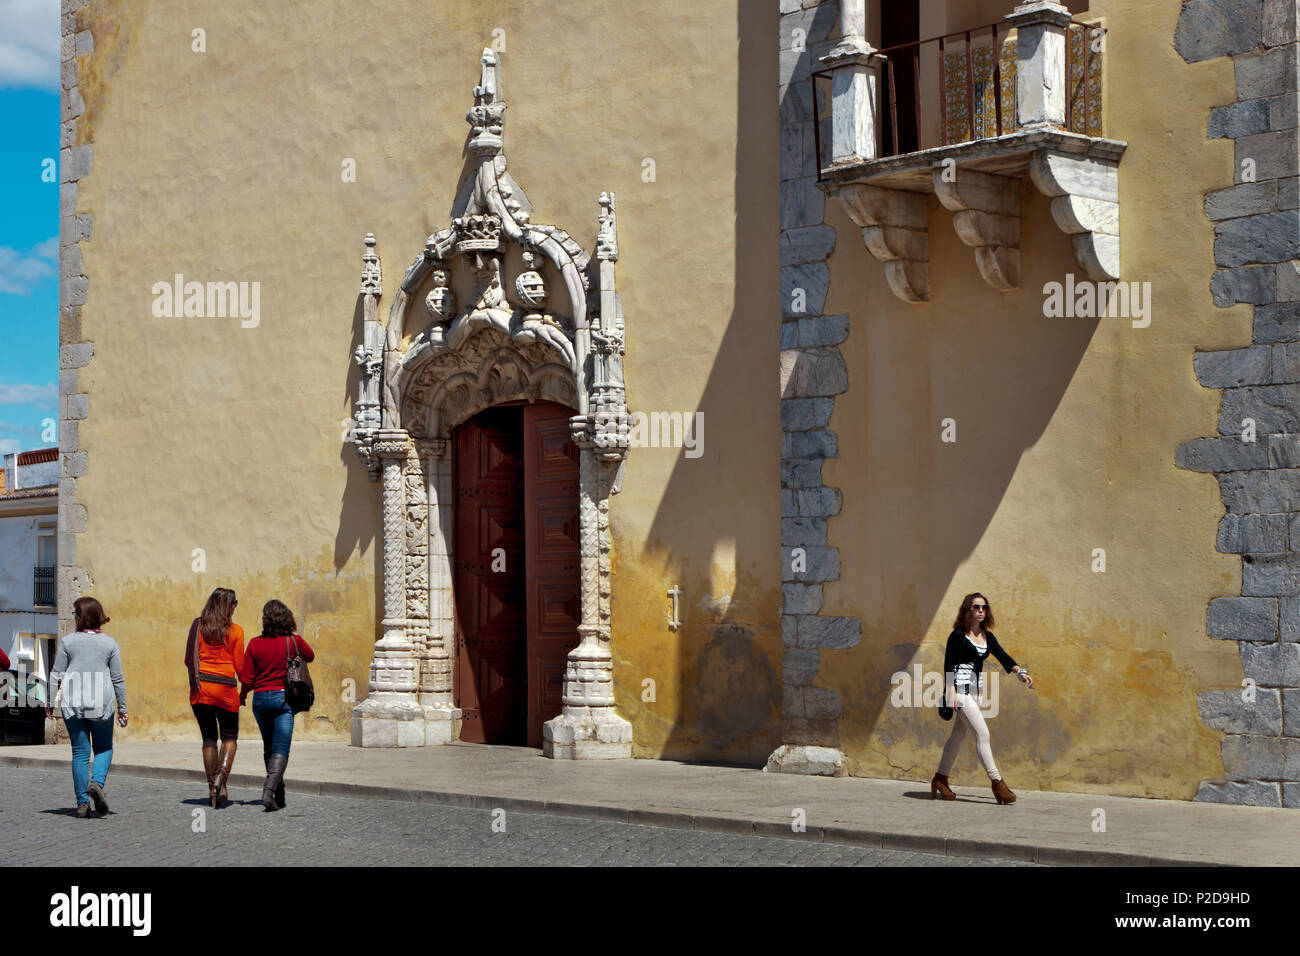 Entrance of a church, Moura, Alentejo, Portugal - Stock Image